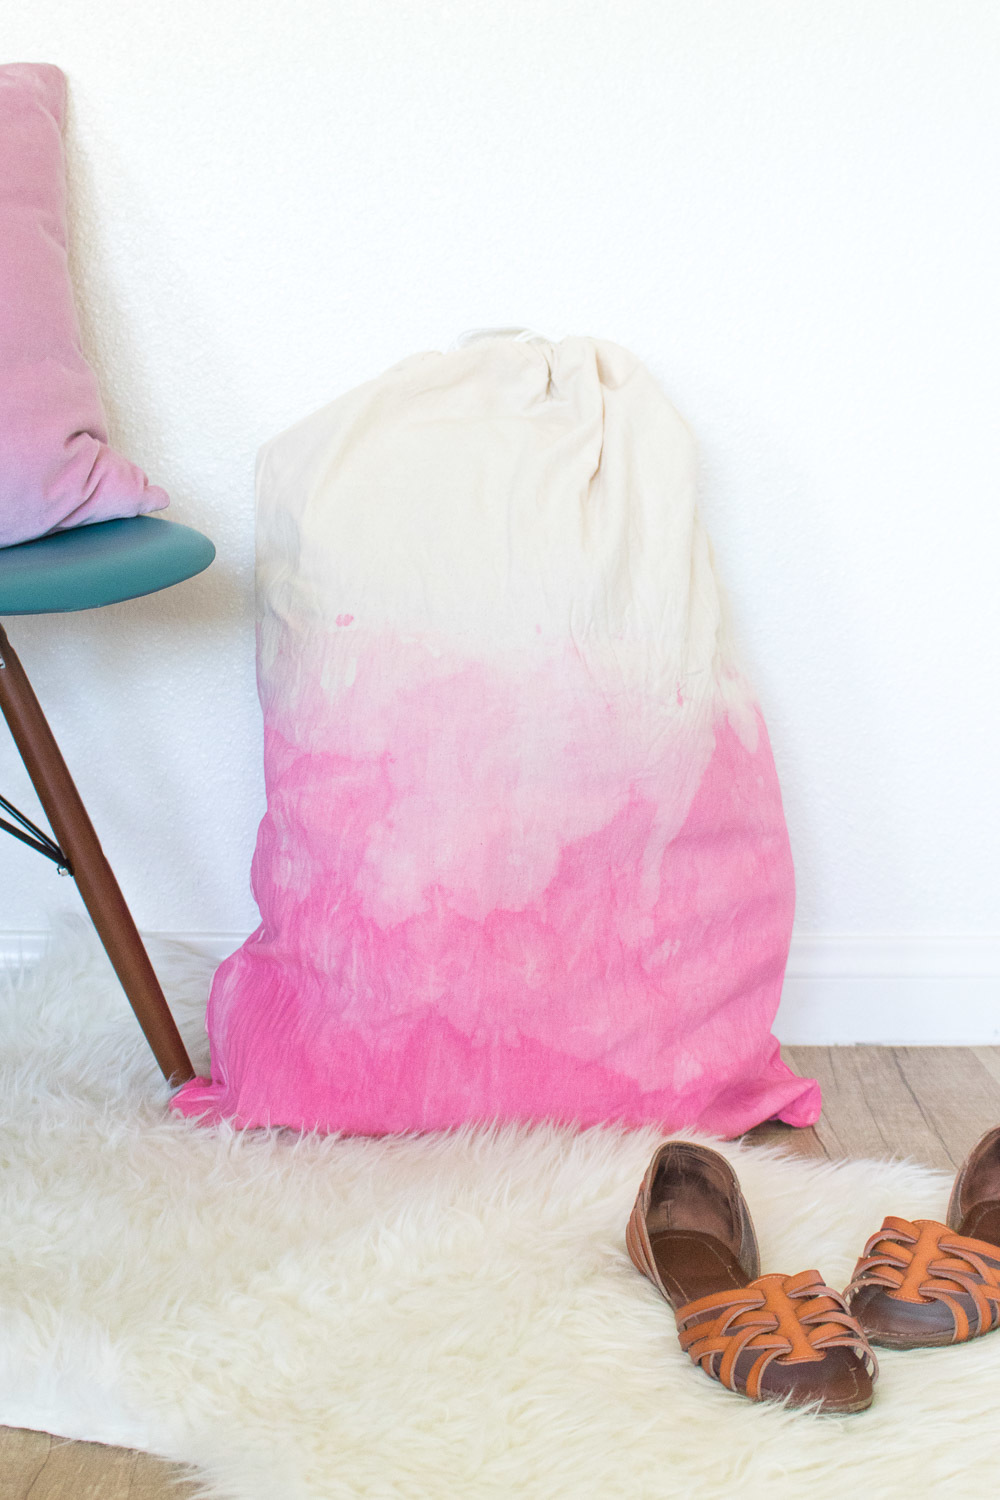 Go Back to School with a Dip-Dyed Ombre Laundry Bag